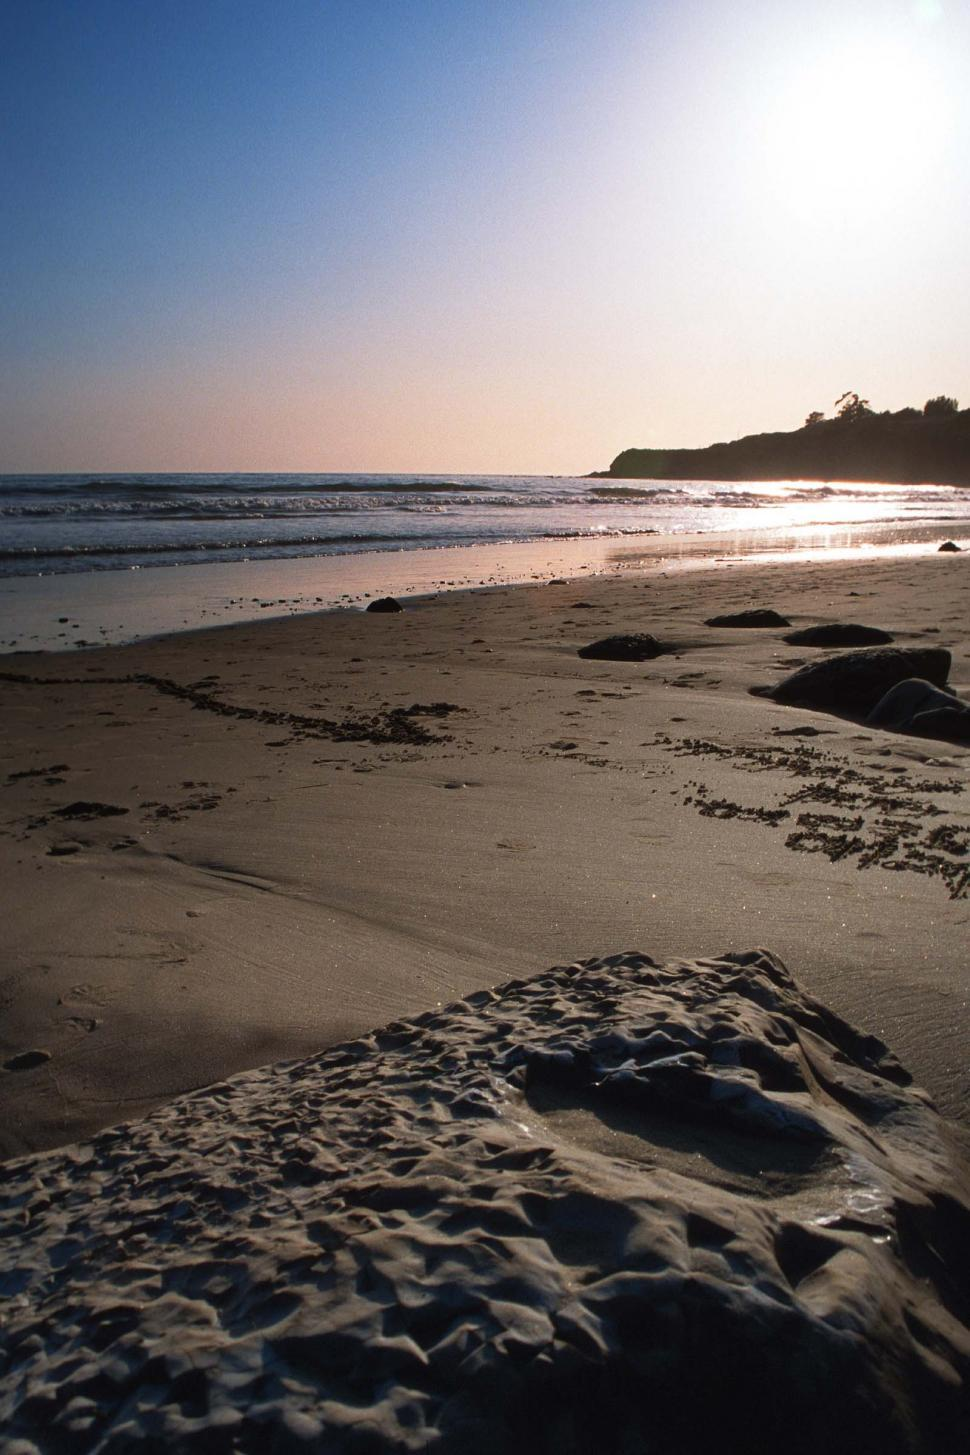 Download Free Stock HD Photo of Beach sunset with rocks and sand Online